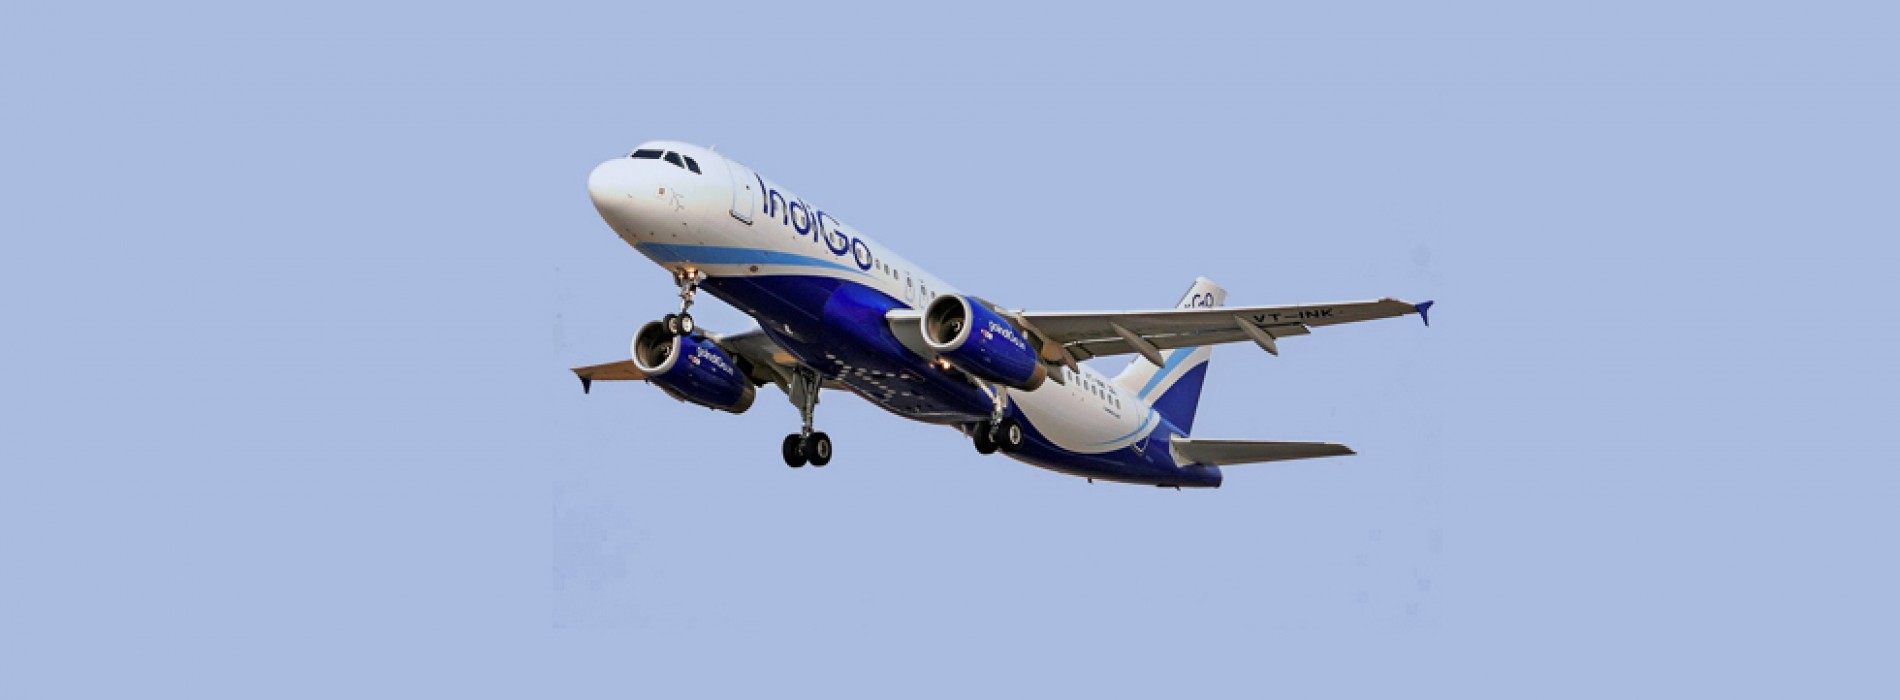 IndiGo enhances Tier II connectivity; Adds 8 additional flights on its network